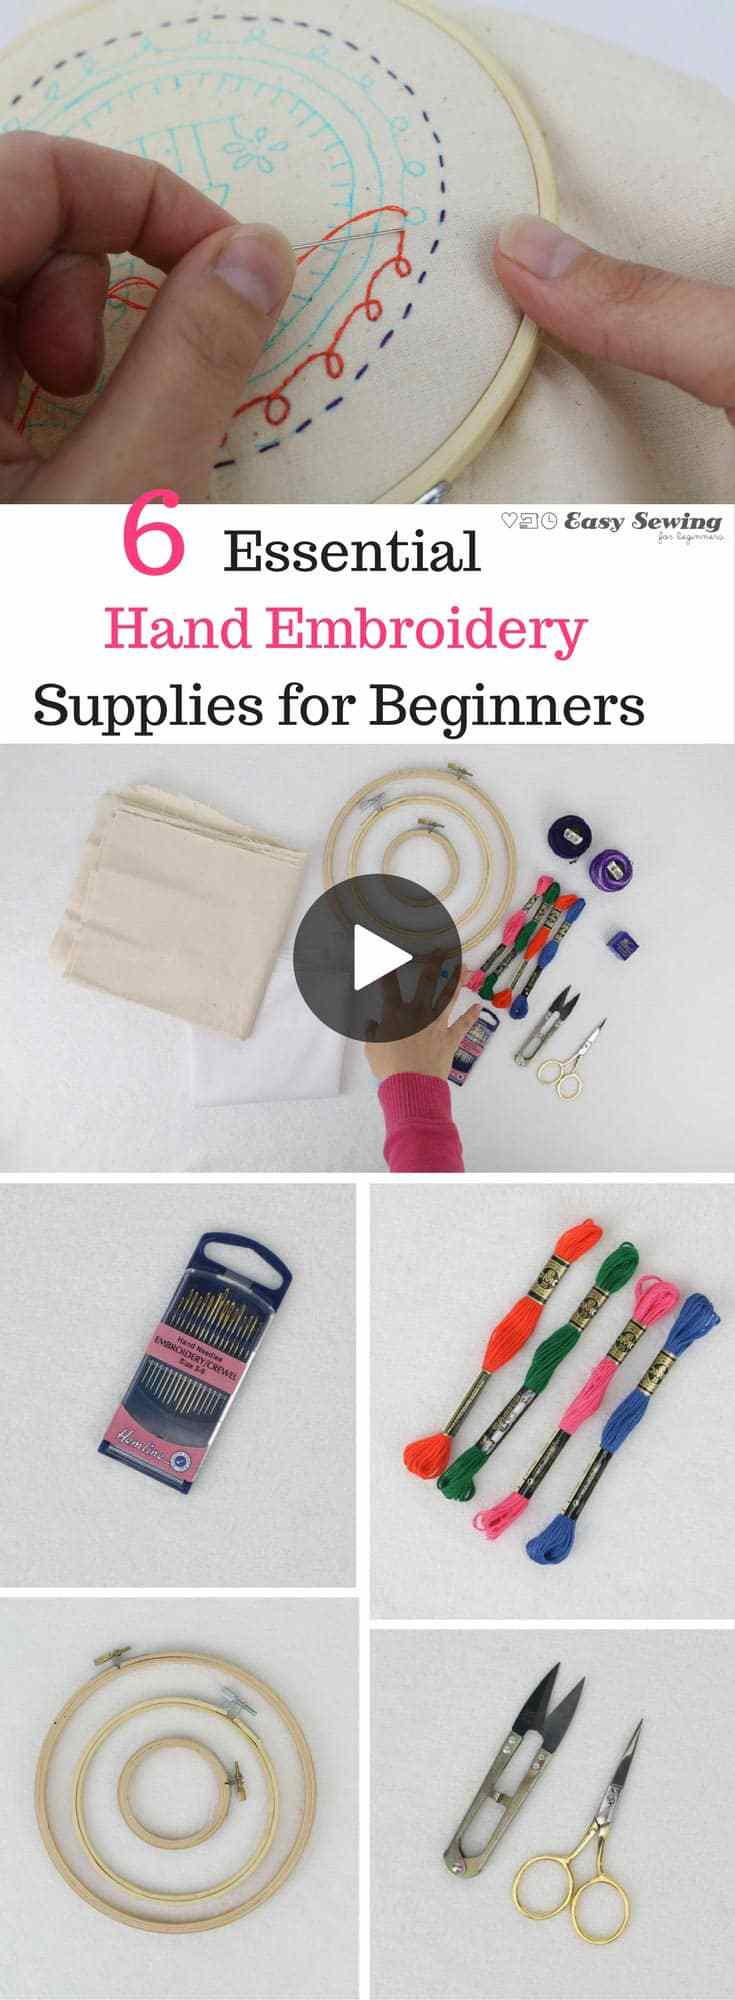 Awesome 6 Essential Hand Embroidery Supplies for Beginners Hand Embroidery Kits Of Delightful 45 Photos Hand Embroidery Kits